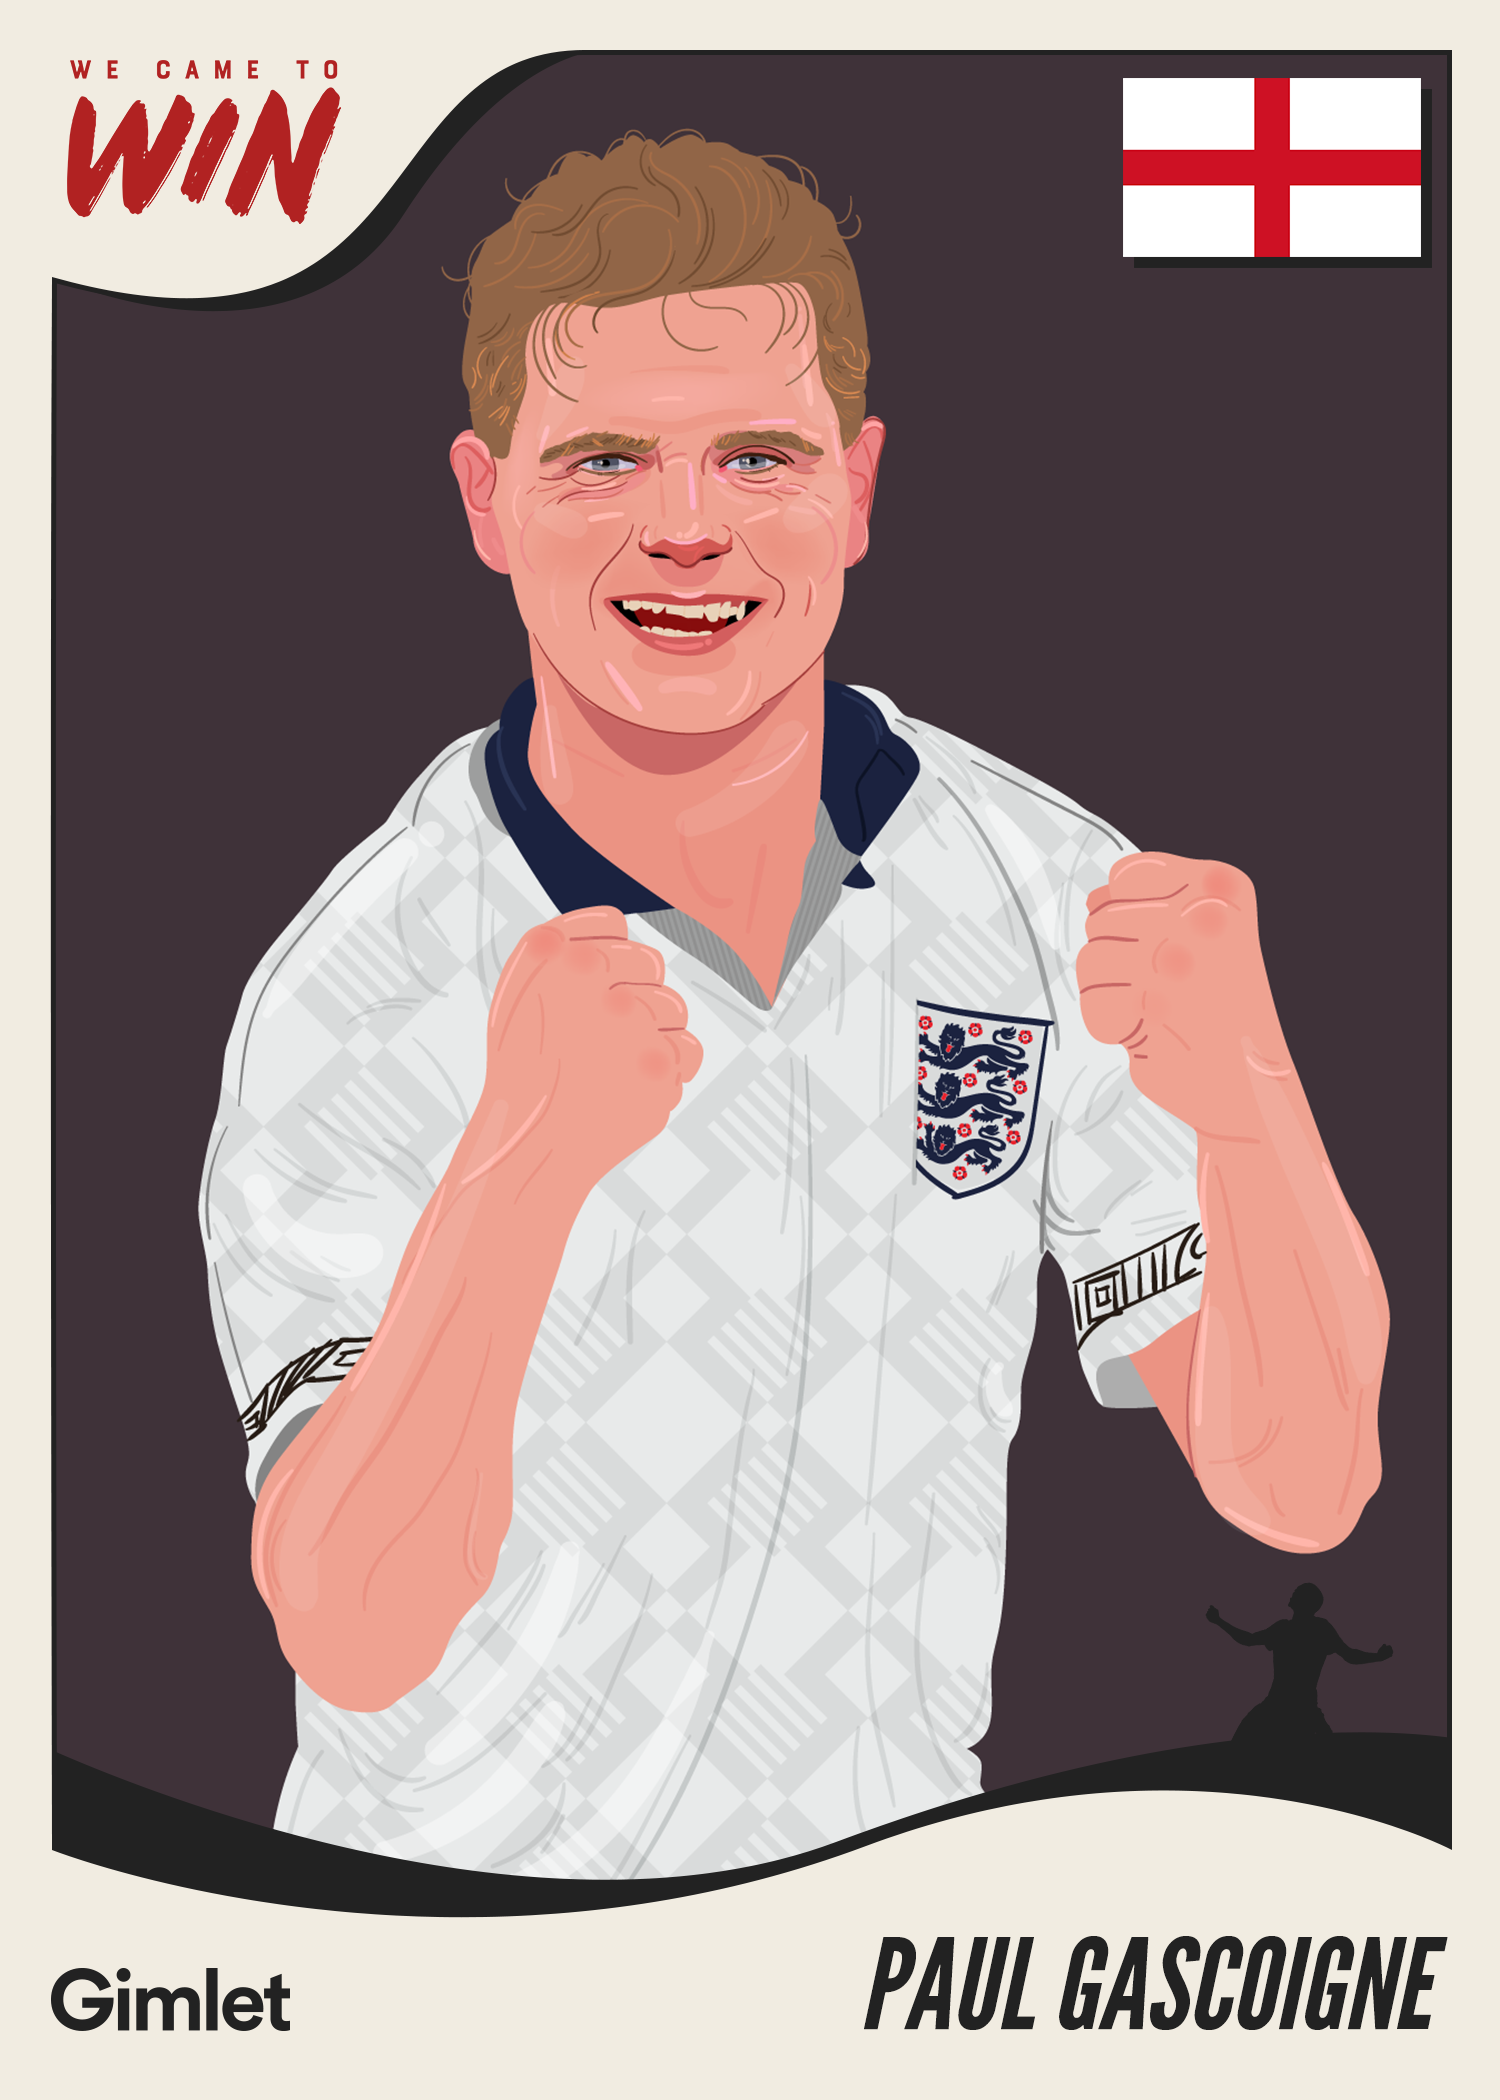 20180424_WCTW-Player-Card-Paul-Gascoigne-mallory-heyer.png